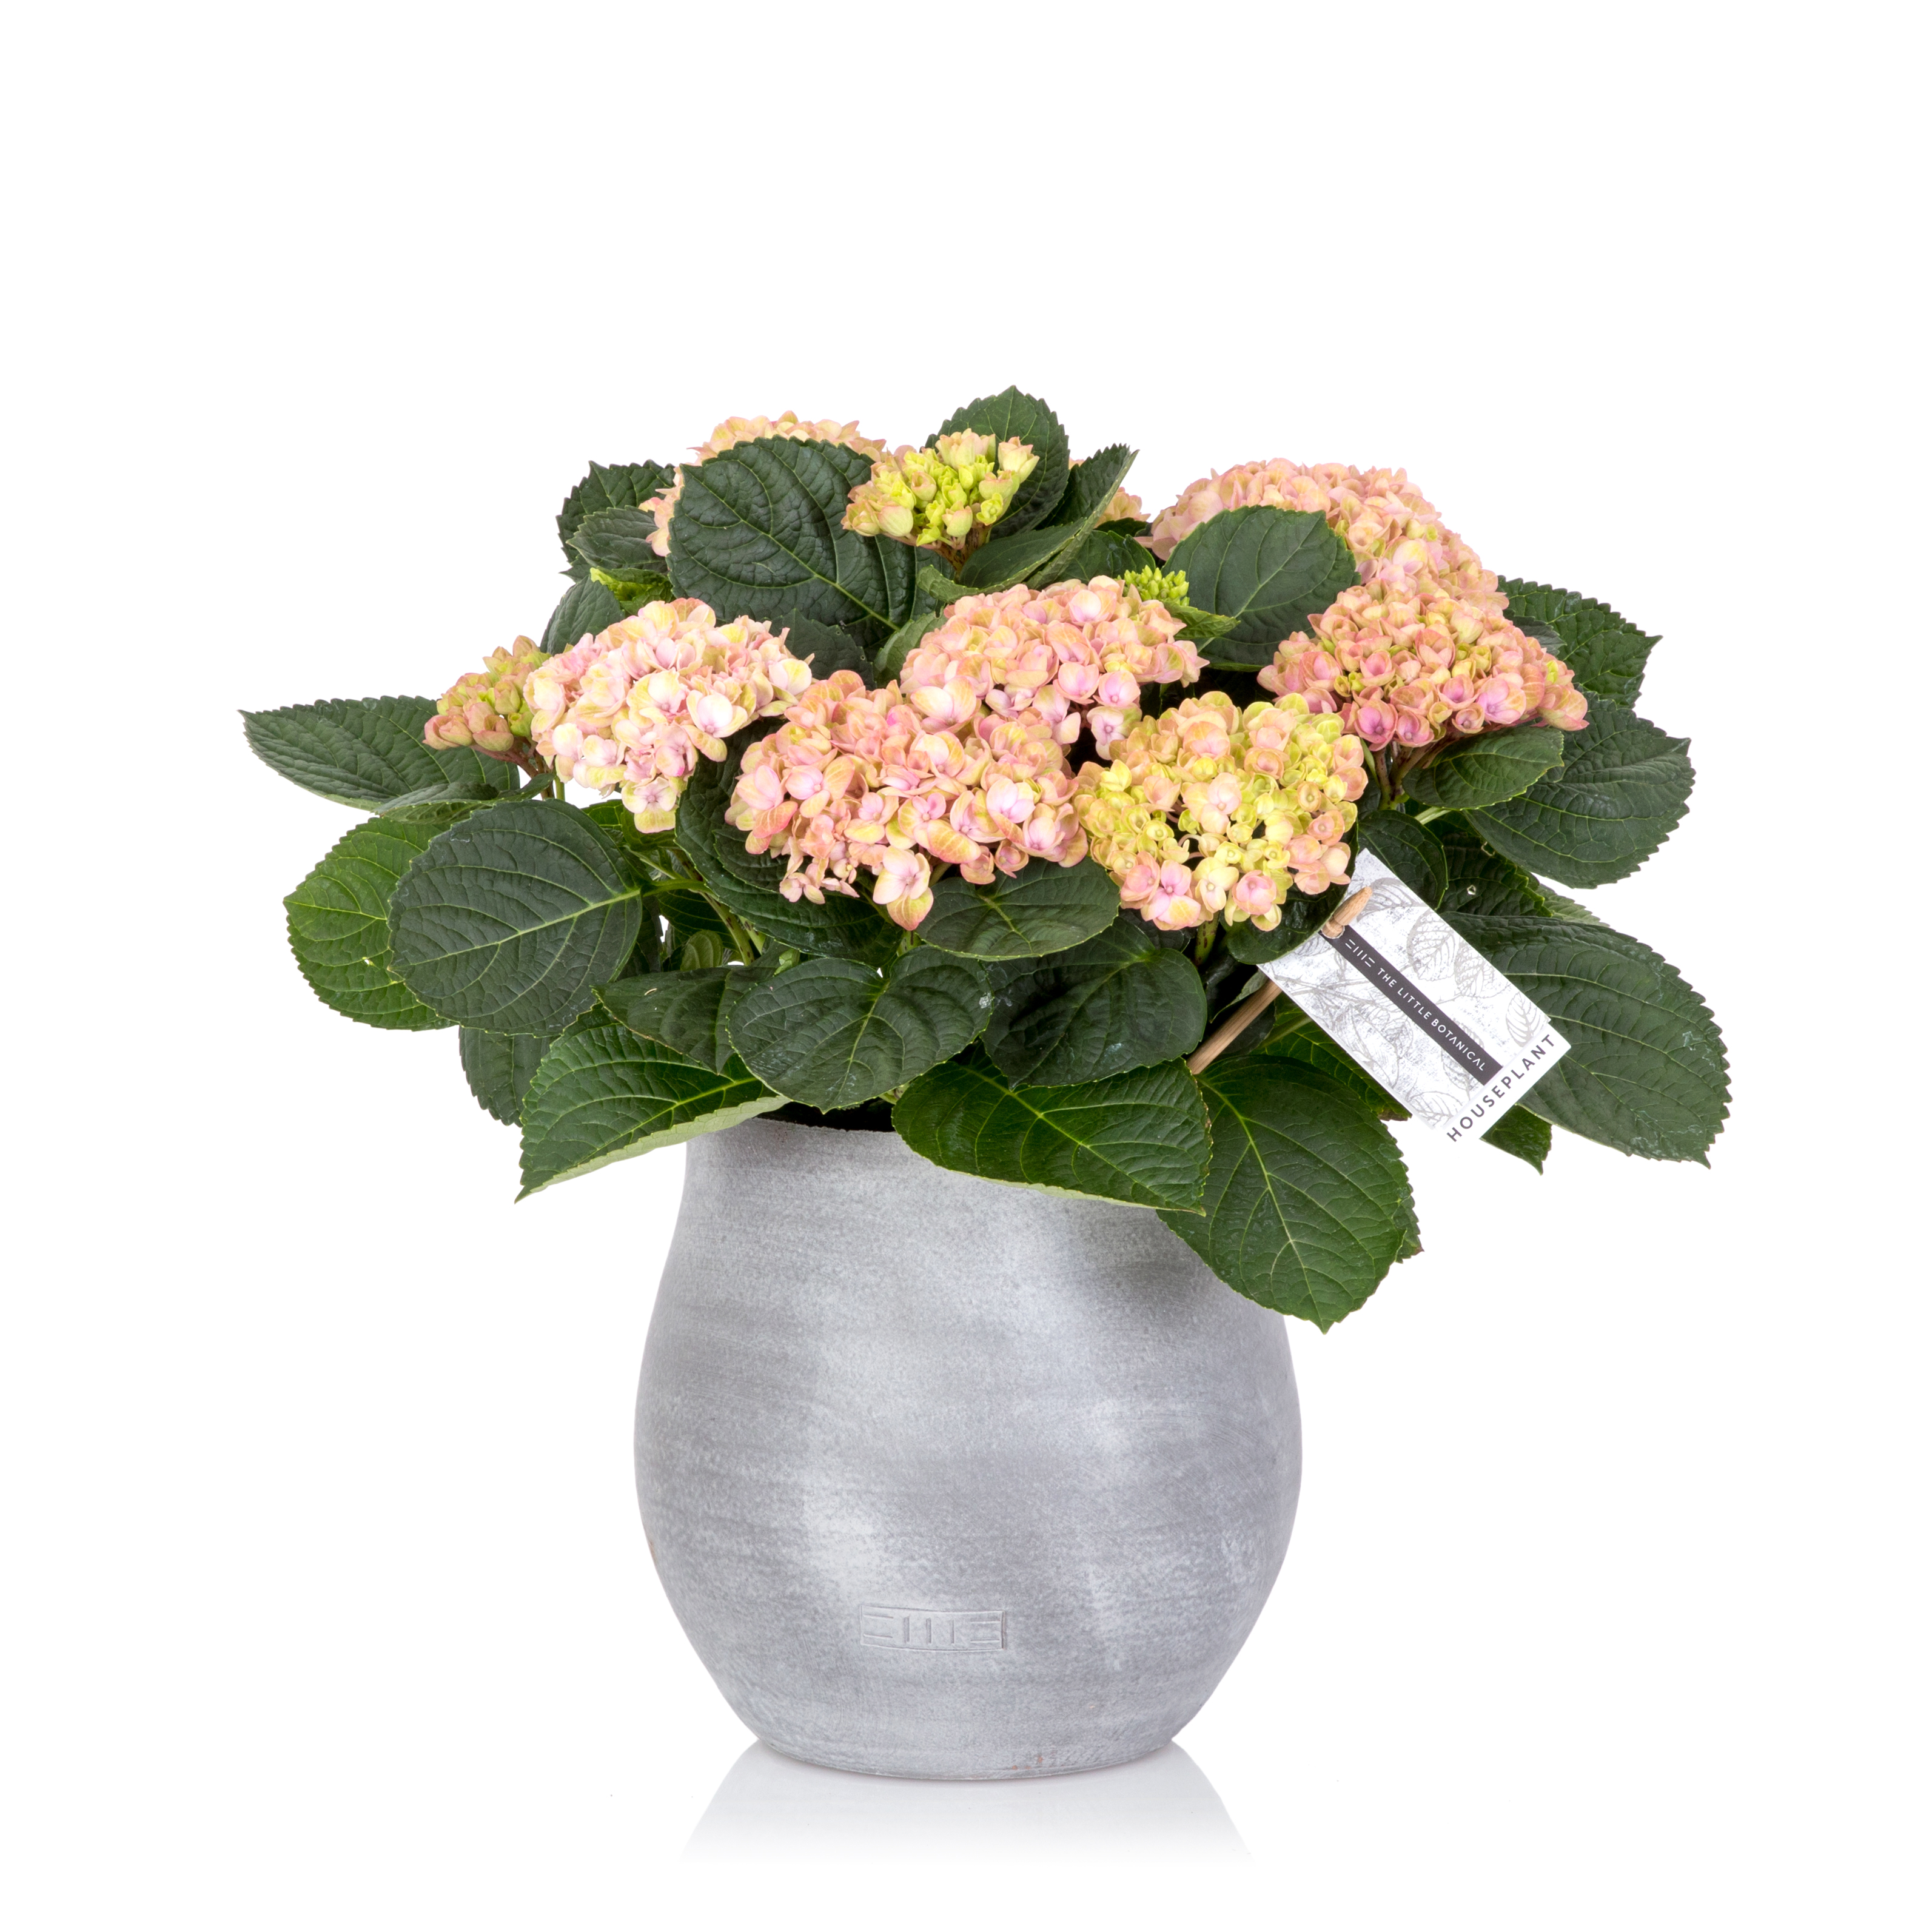 Indoor Plants With Small Pink Flowers - Flowers Healthy